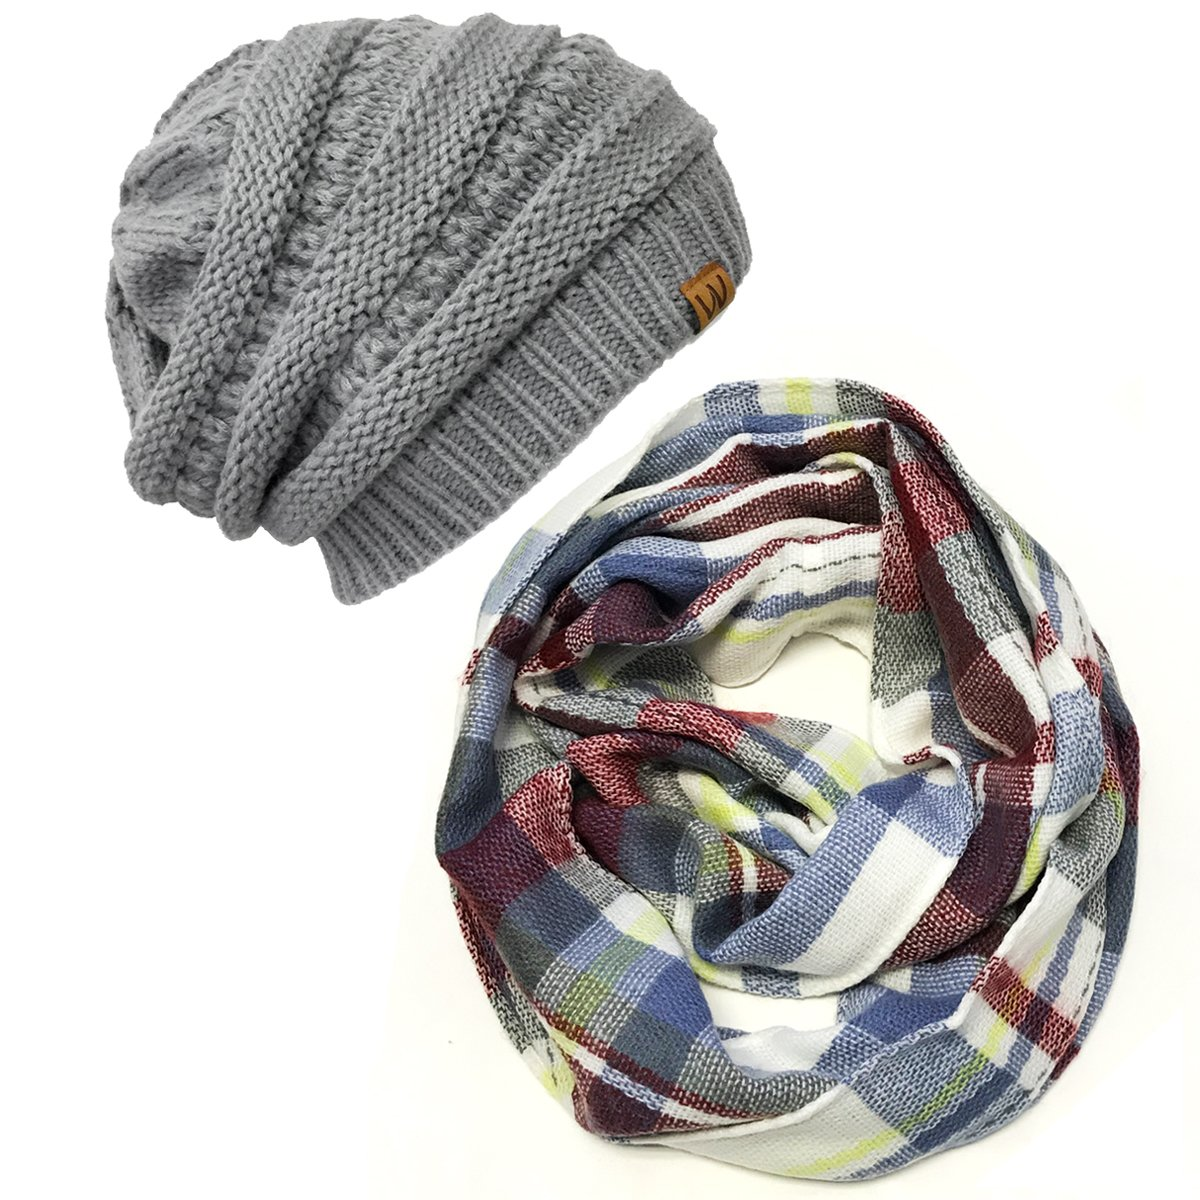 Allydrew Fashionable Plaid Winter Scarf Accessories, Infinity Scarf & Beanie Set, Gray/Wineand Gray Set